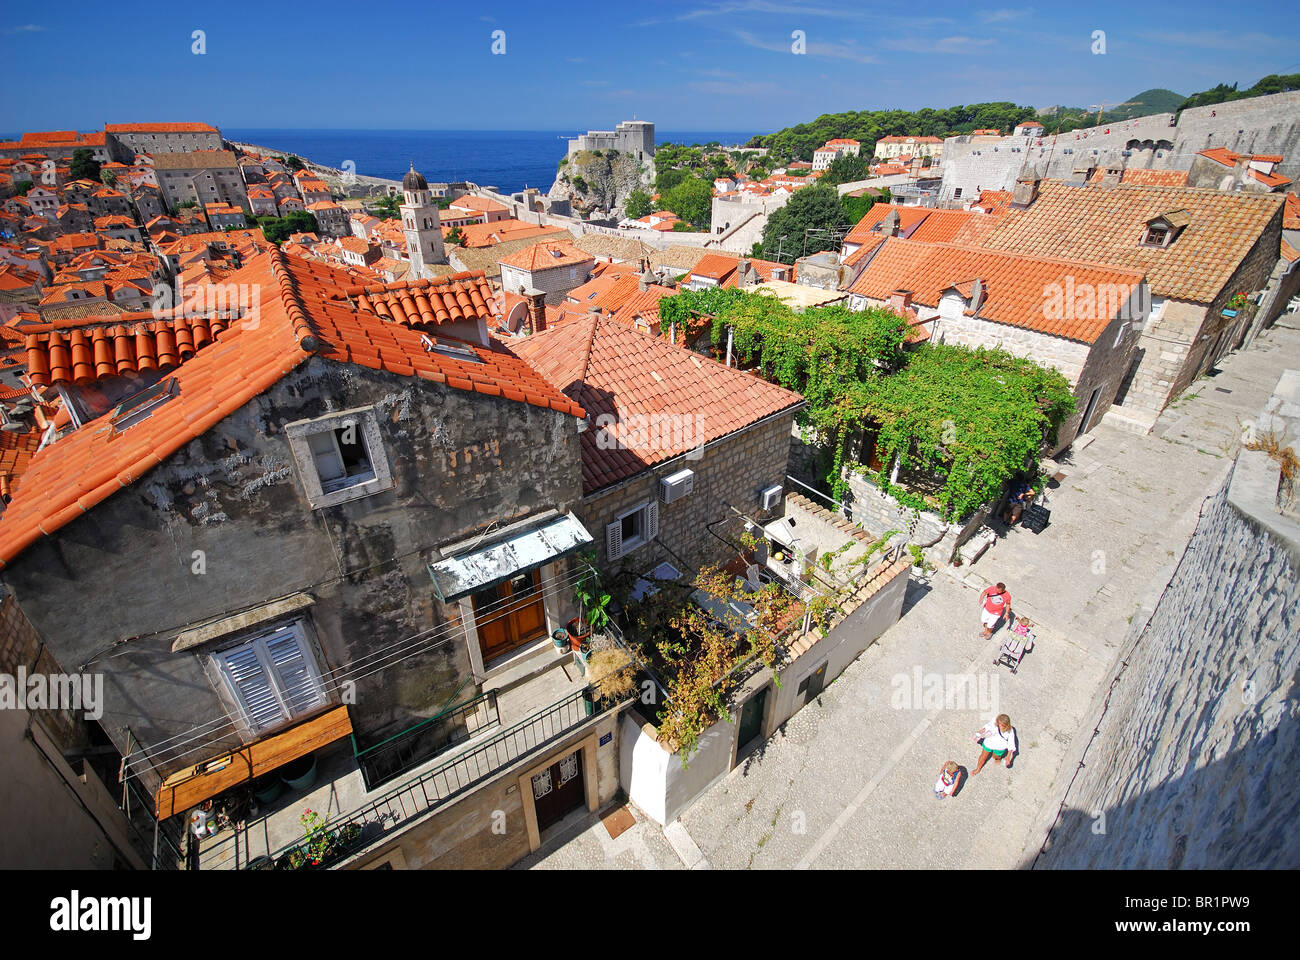 DUBROVNIK, CROATIA. A street in the old town, as seen from the town walls. 2010. Stock Photo